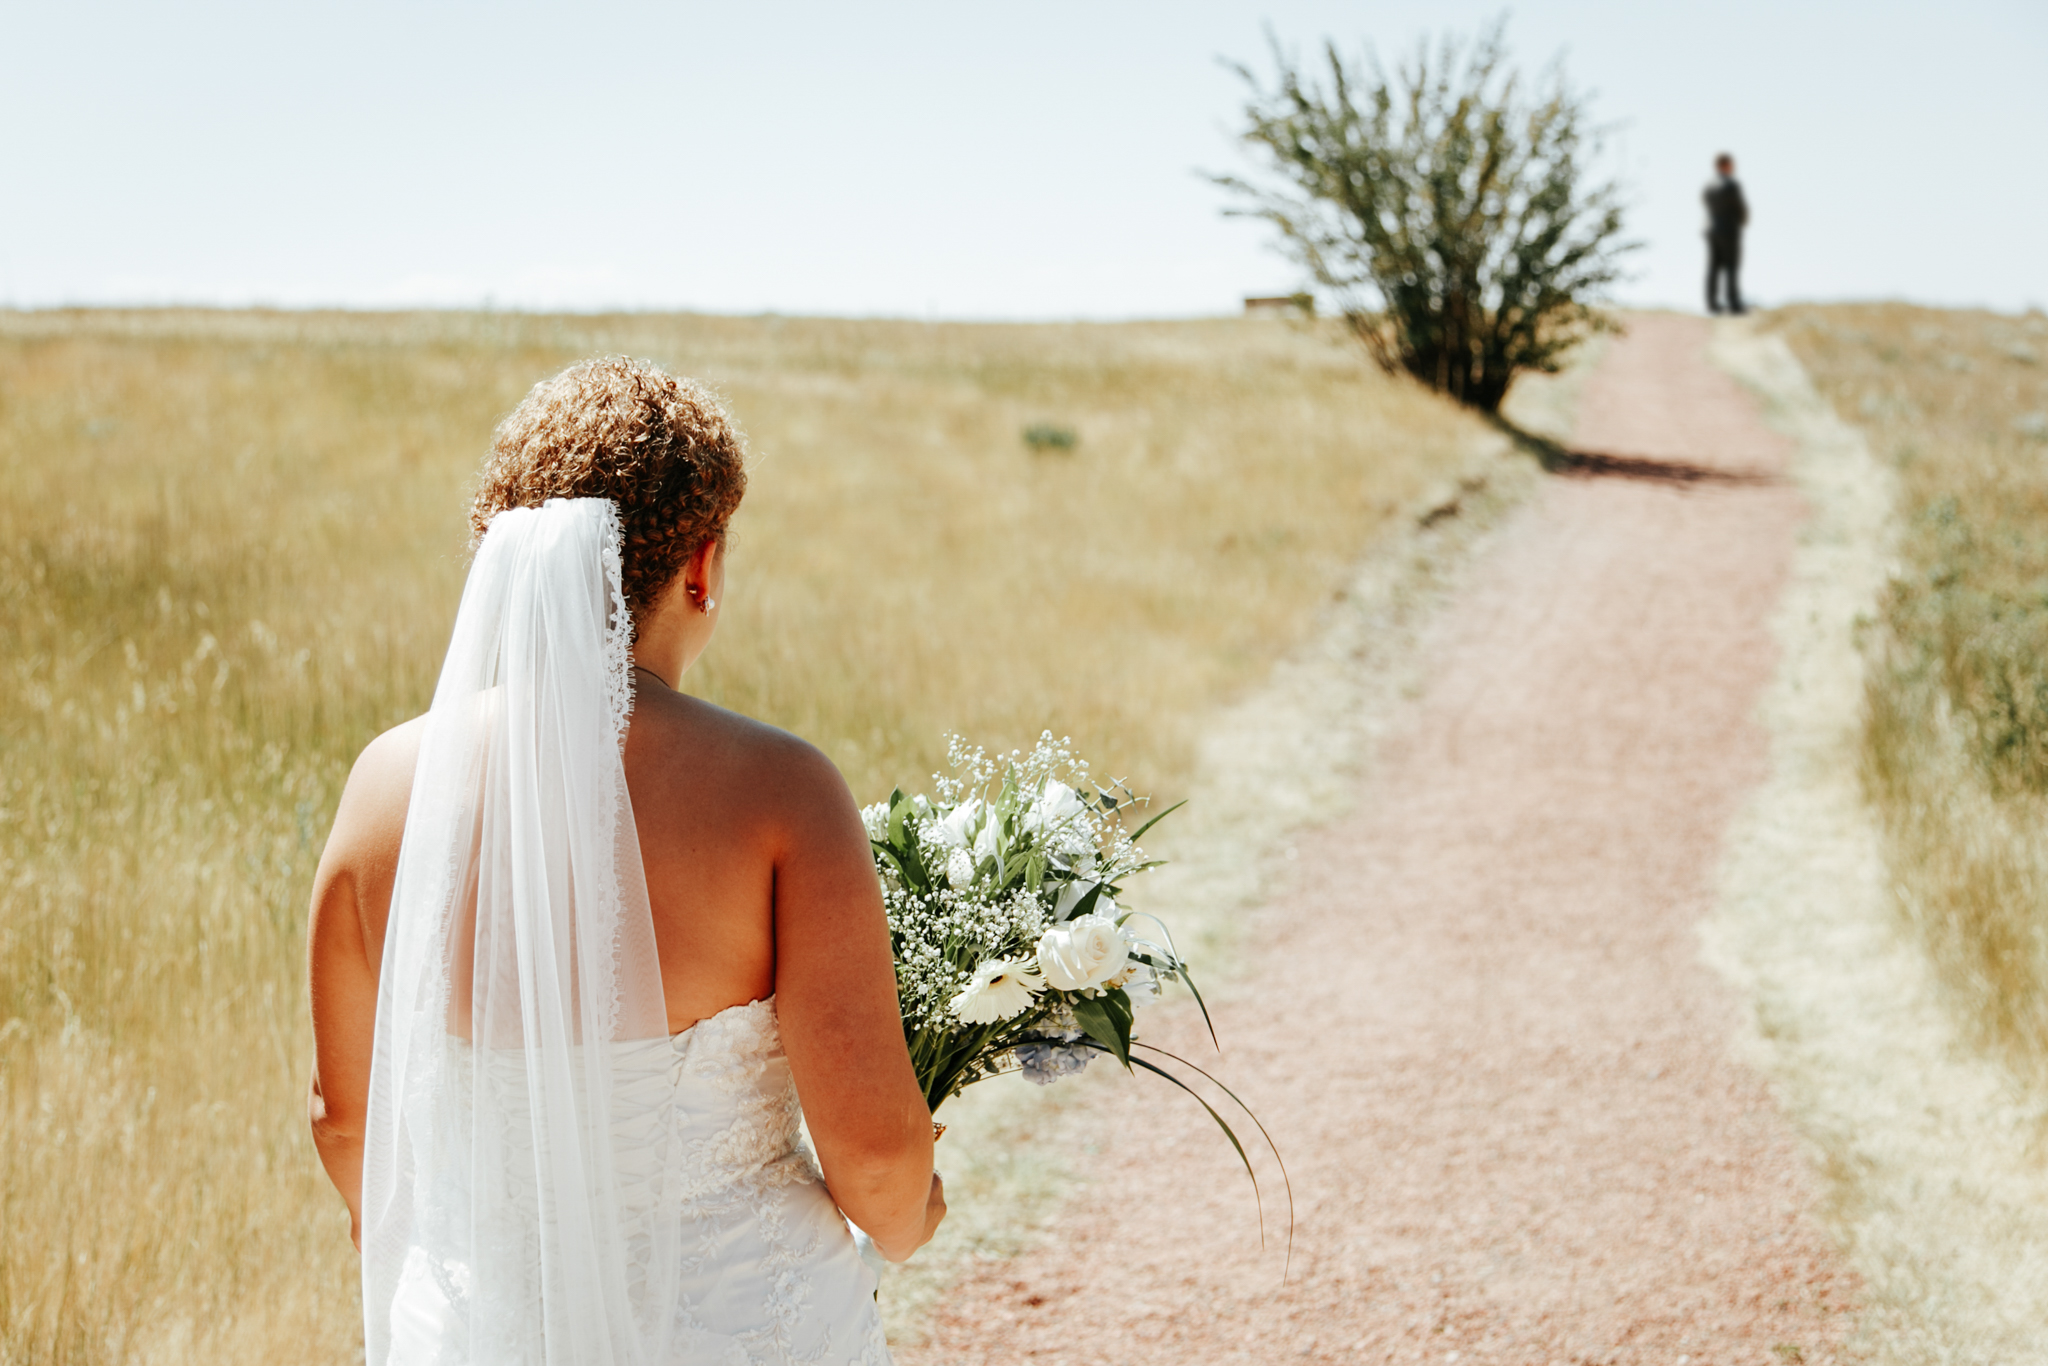 lethbridge-wedding-photographer-love-and-be-loved-photography-trent-danielle-galt-reception-picture-image-photo-23.jpg